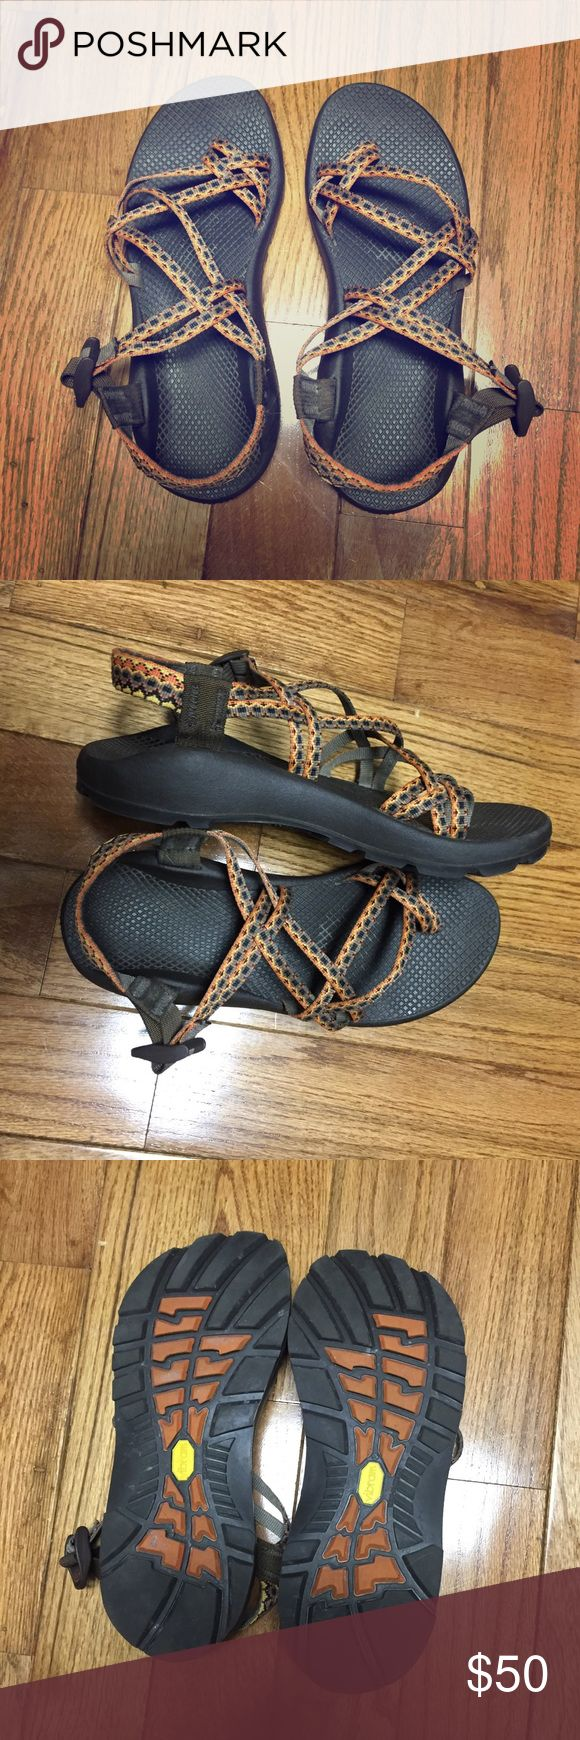 Chaco Sandals! Size 10! Worn a couple times, in good condition! **The ankle straps have been cut using a rope cutter so that they wouldn't fray. I have a large/wide foot and the strap is still long enough to keep it secure** Please ask any questions before buying! Chaco Shoes Sandals